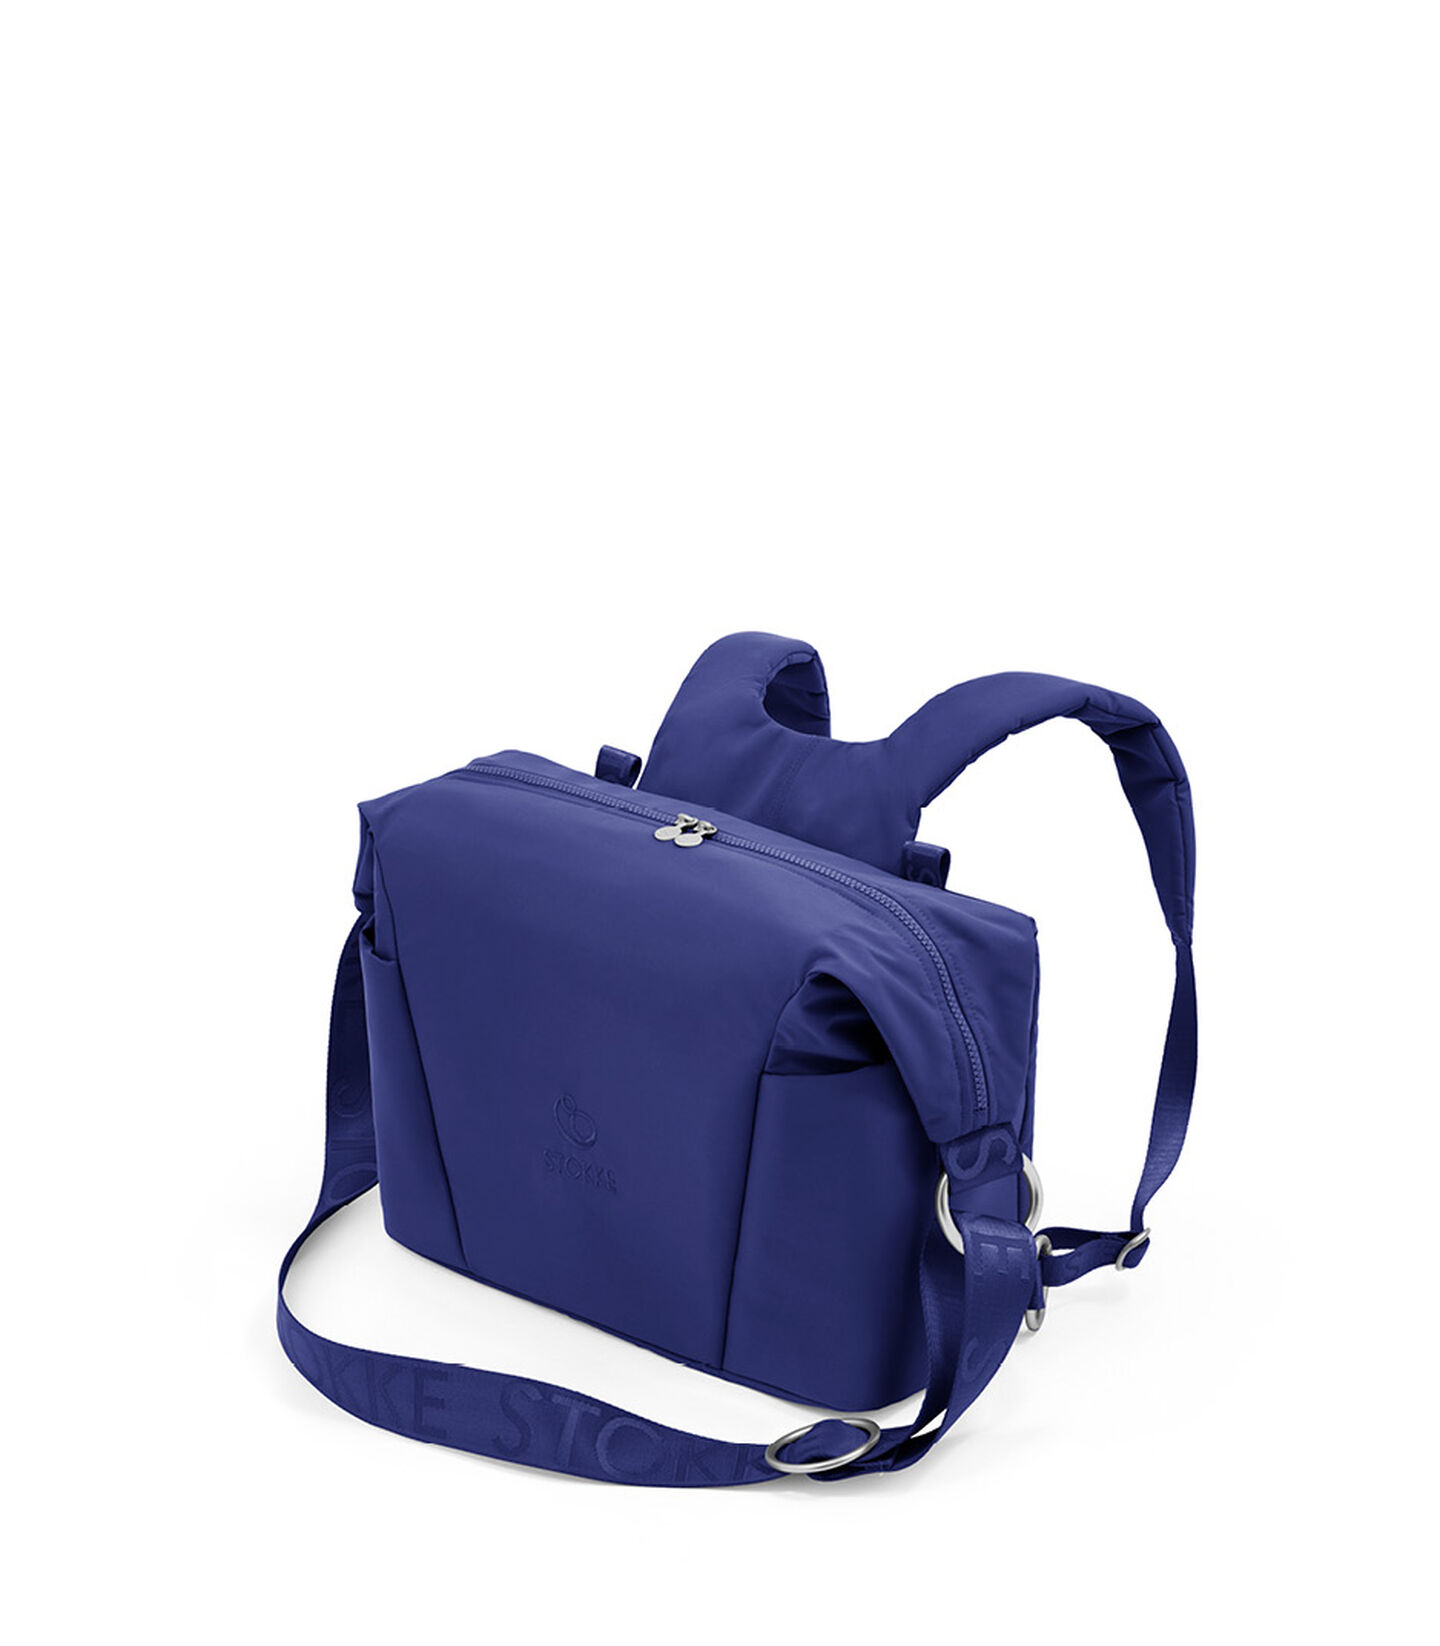 Stokke® Xplory® X Wickeltasche Royal Blue, Royal Blue, mainview view 1